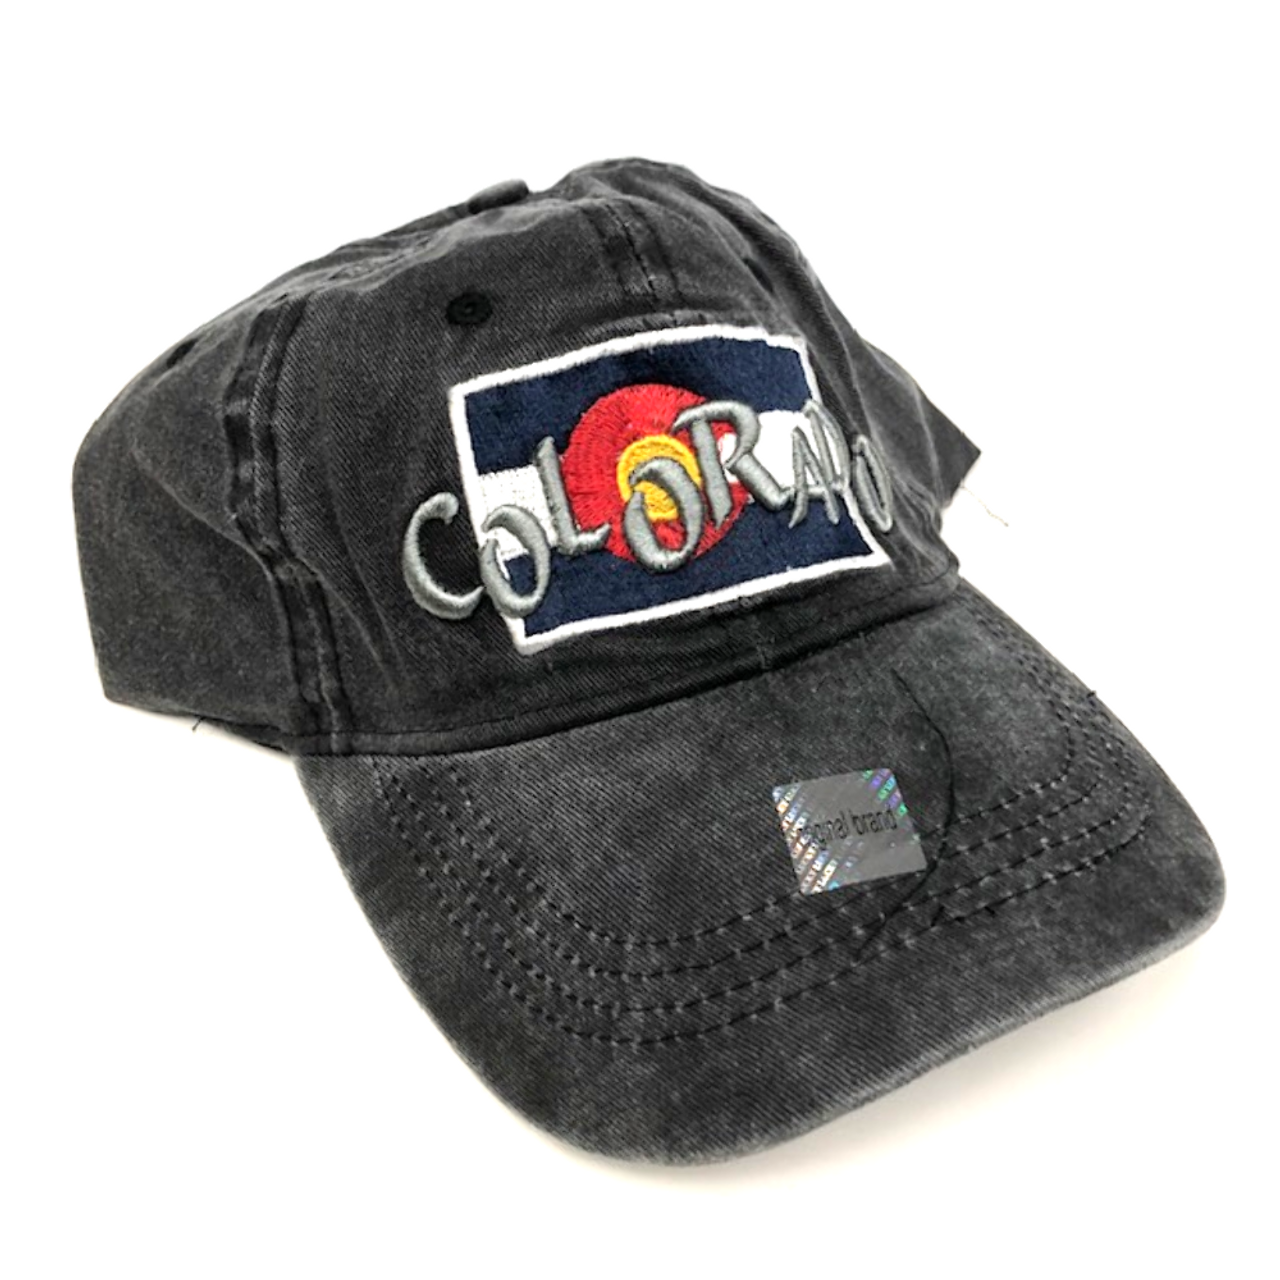 b0e9ddf5d Colorado Flag w/ Funky Colorado Adjustable Flat Brim Baseball Hat (BLACK)